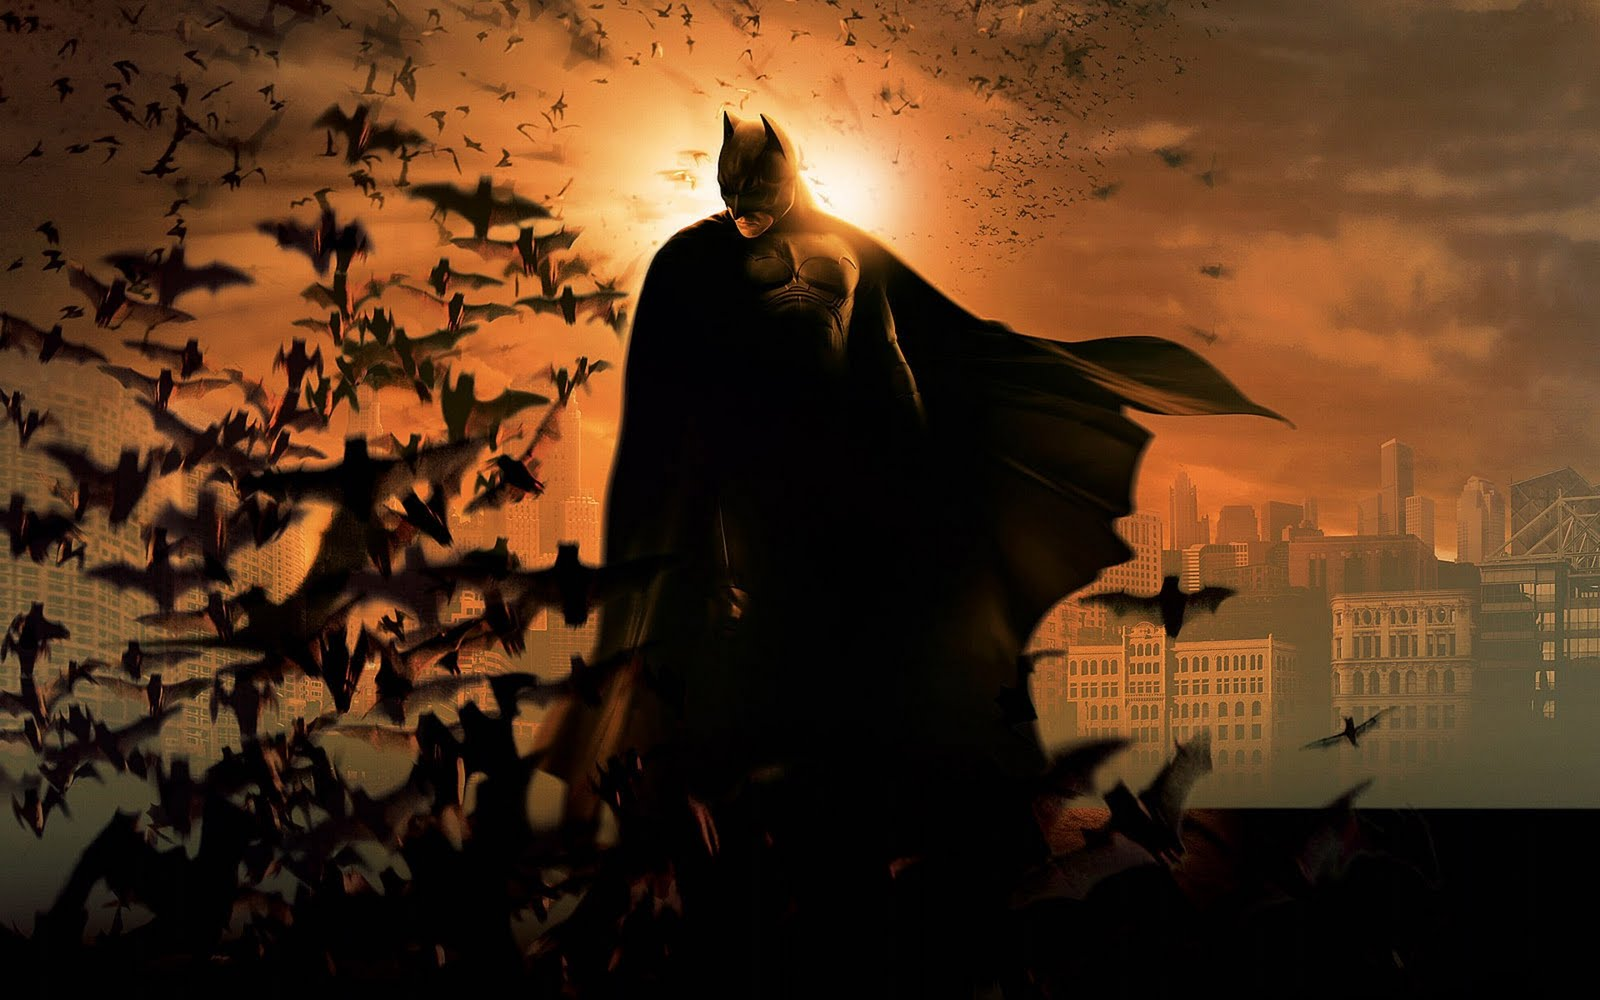 Batman wallpapers for windows 7 Funny Amazing Images 1600x1000